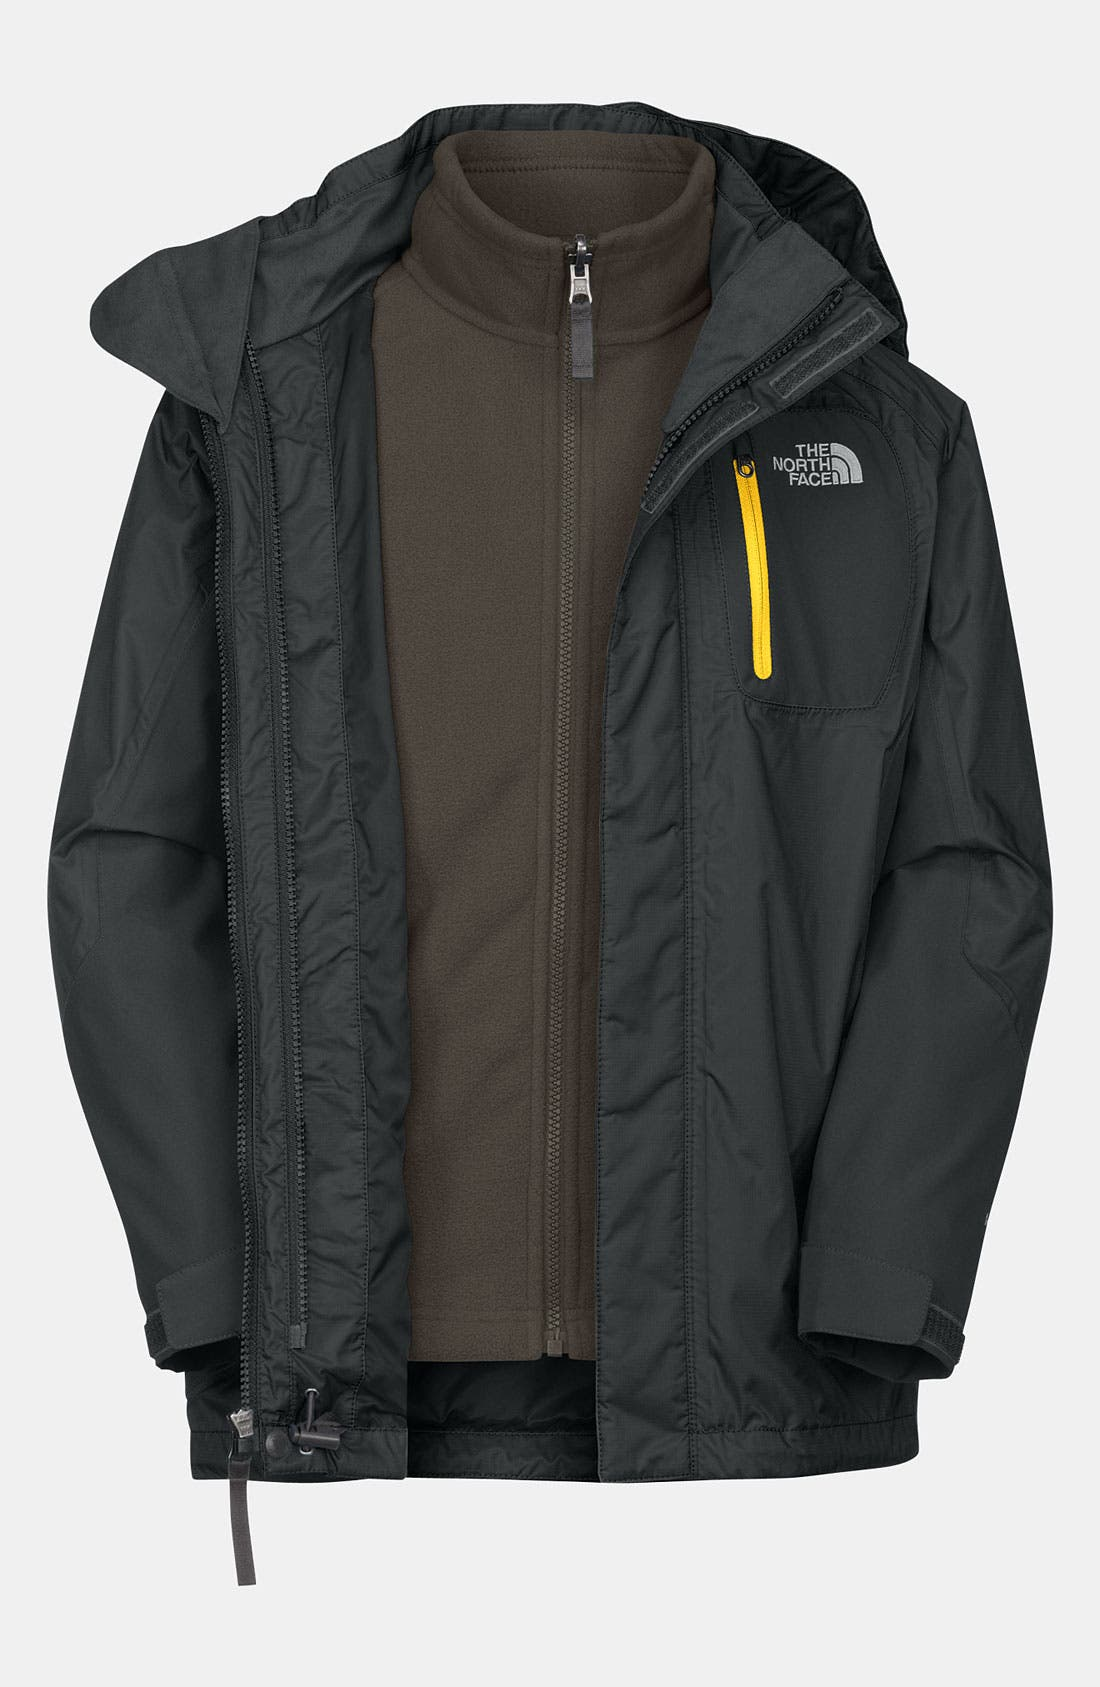 Alternate Image 1 Selected - The North Face 'Atlas' TriClimate® Jacket (Little Boys)